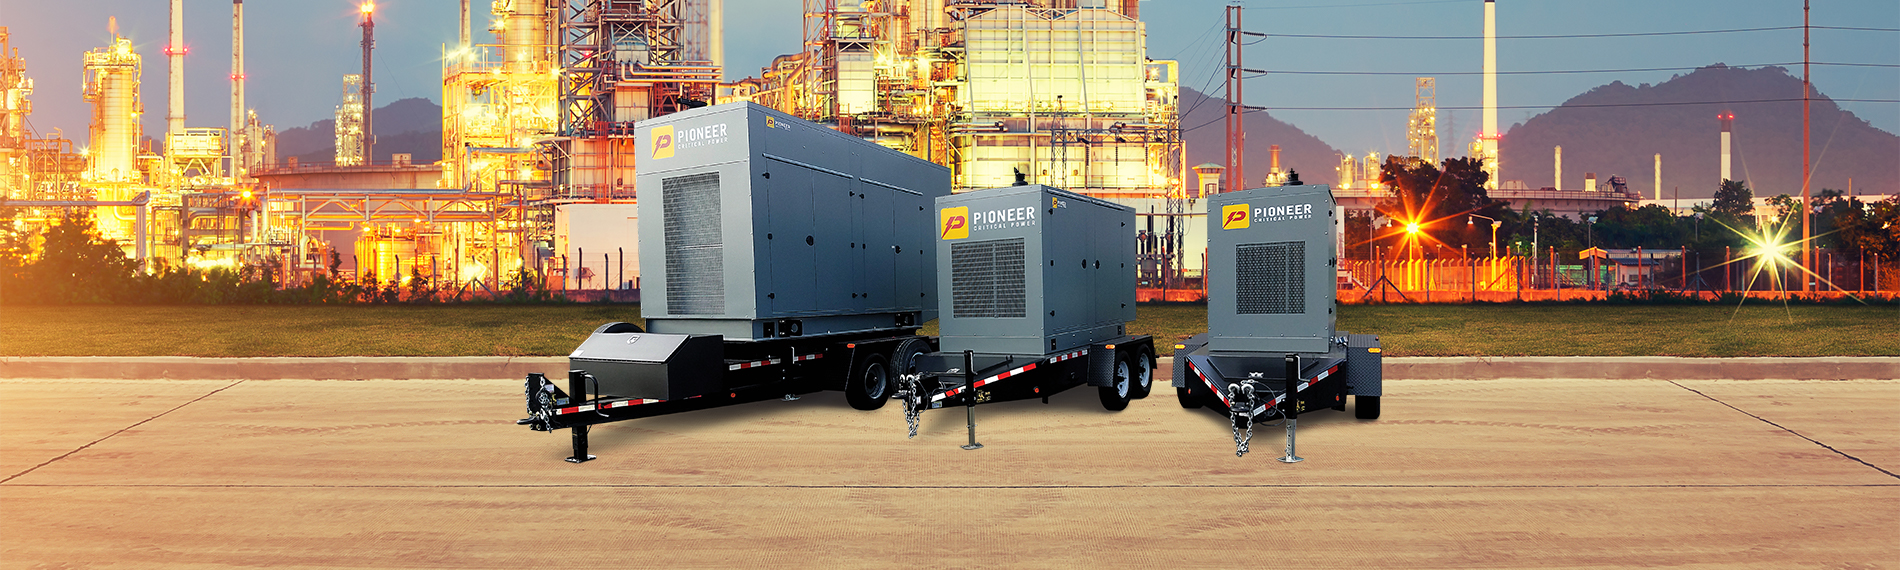 pioneer-critical-power-rentals.jpg